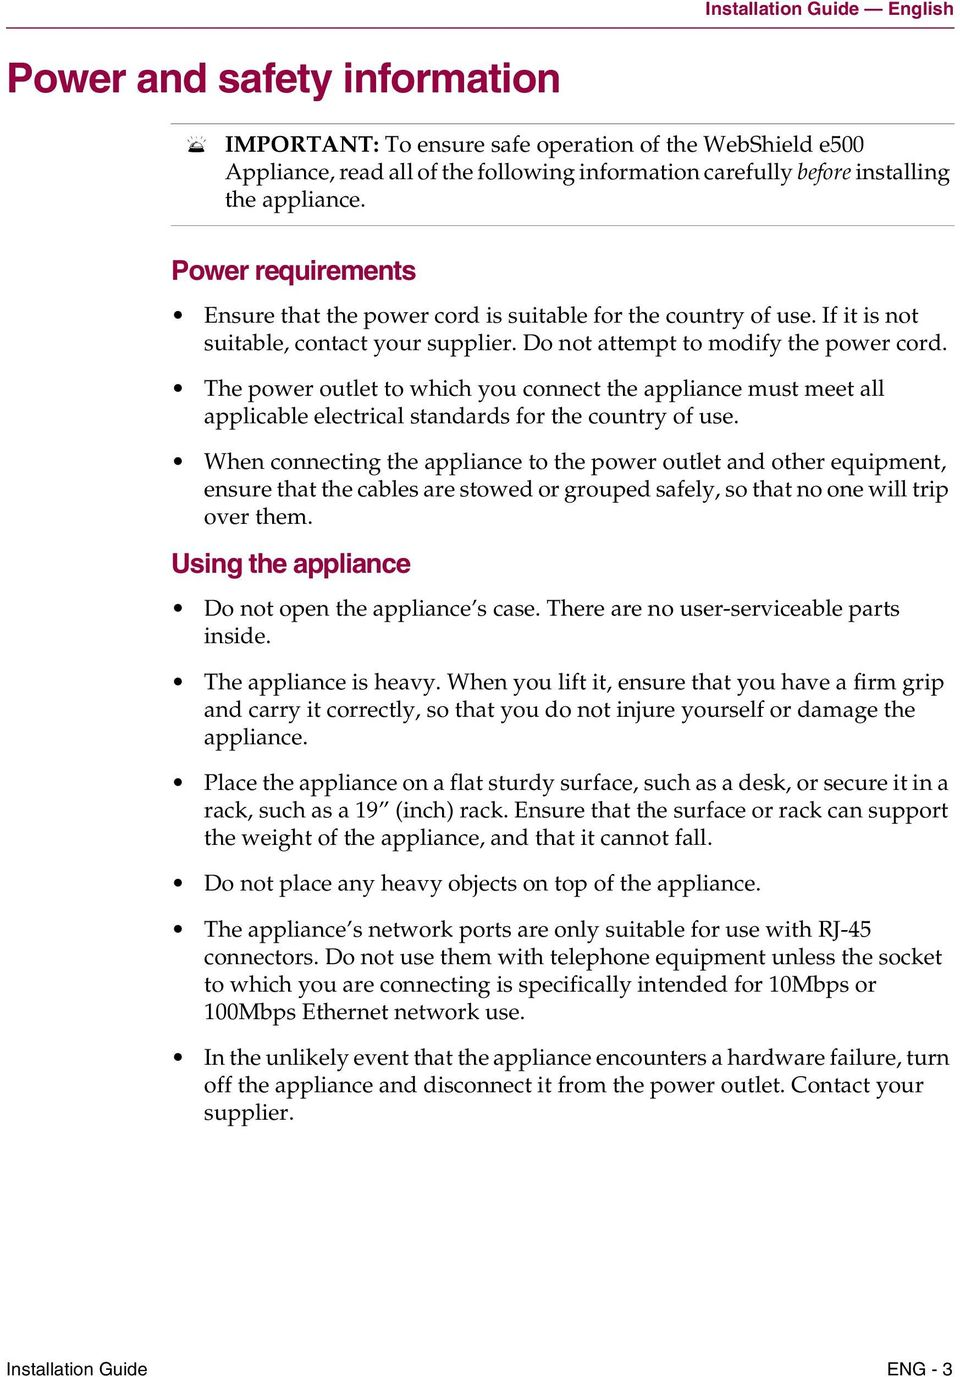 The power outlet to which you connect the appliance must meet all applicable electrical standards for the country of use.